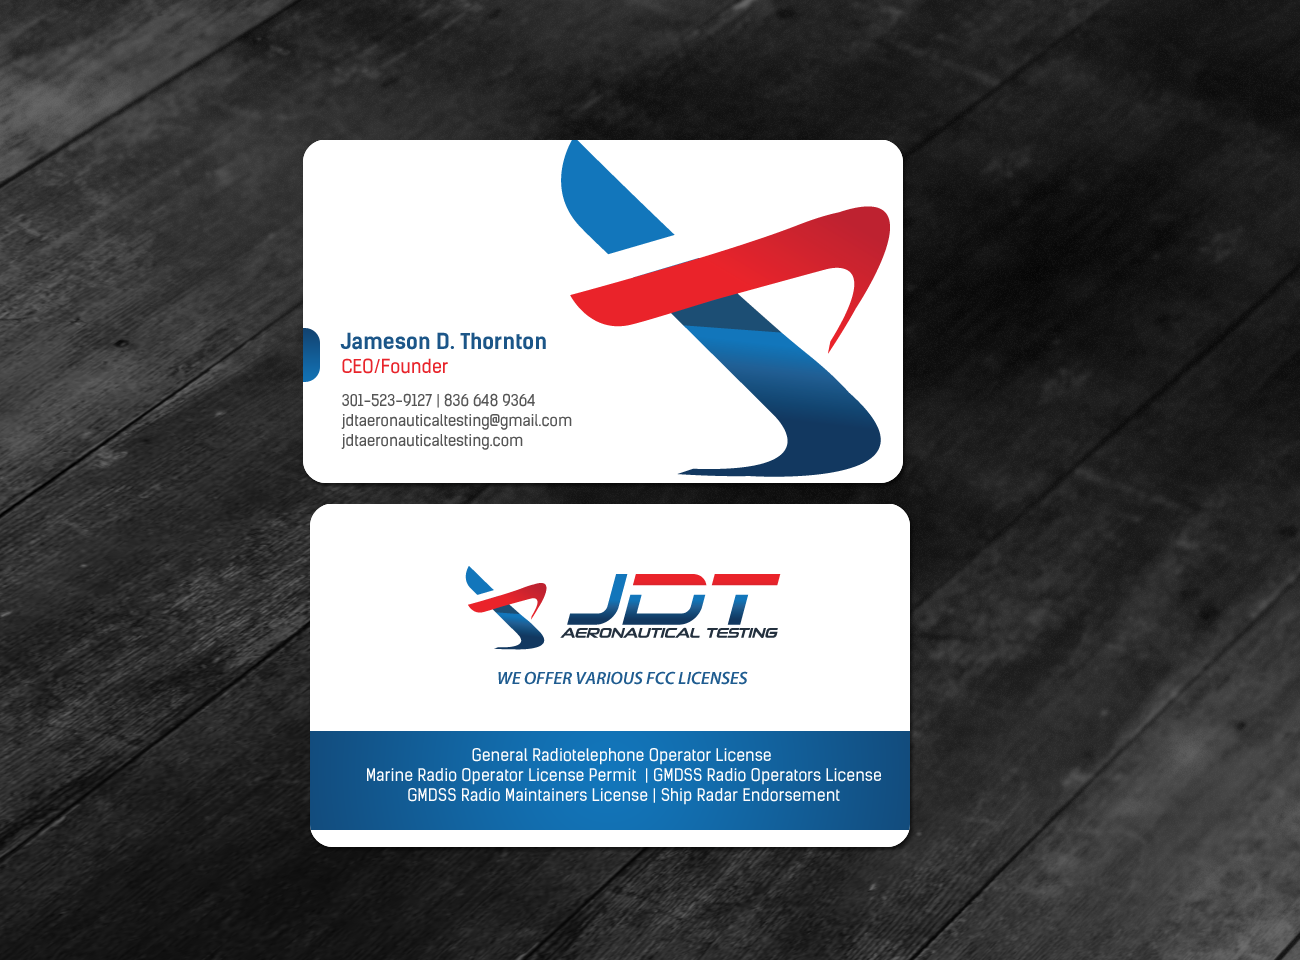 Serious Colorful Business Business Card Design For Jdt